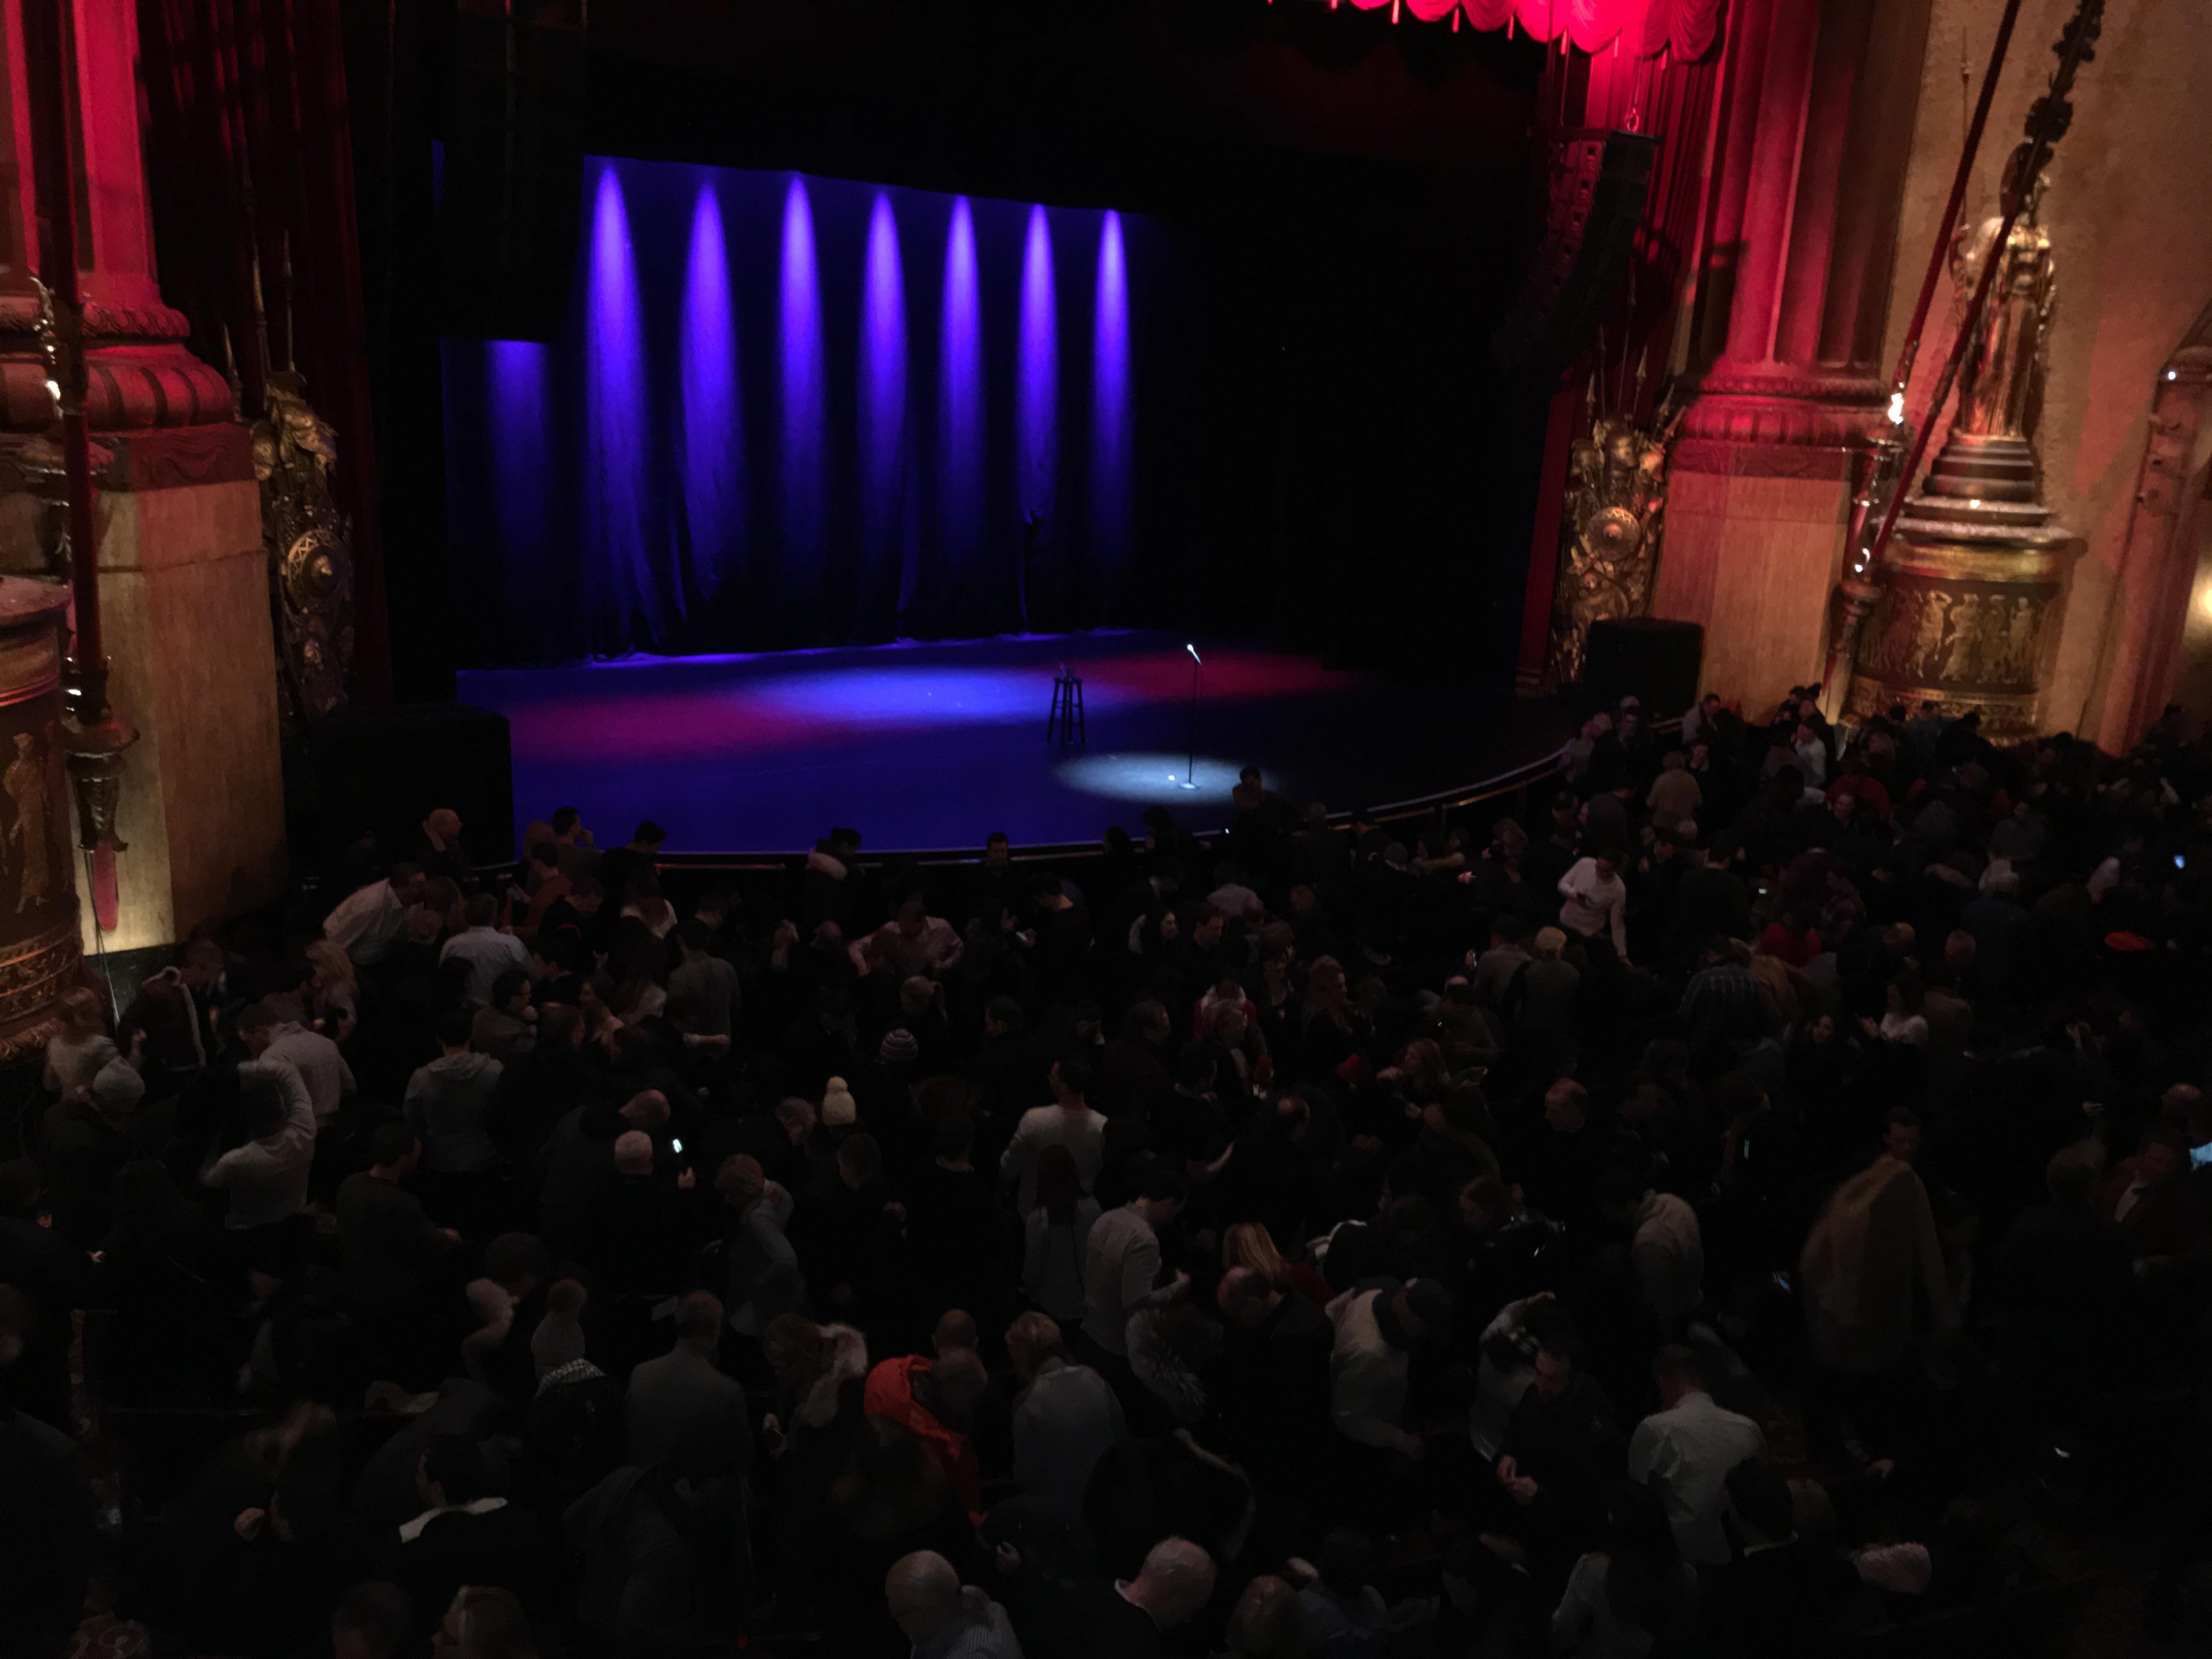 Beacon Theatre Section Loge 3 Row A Seat 31